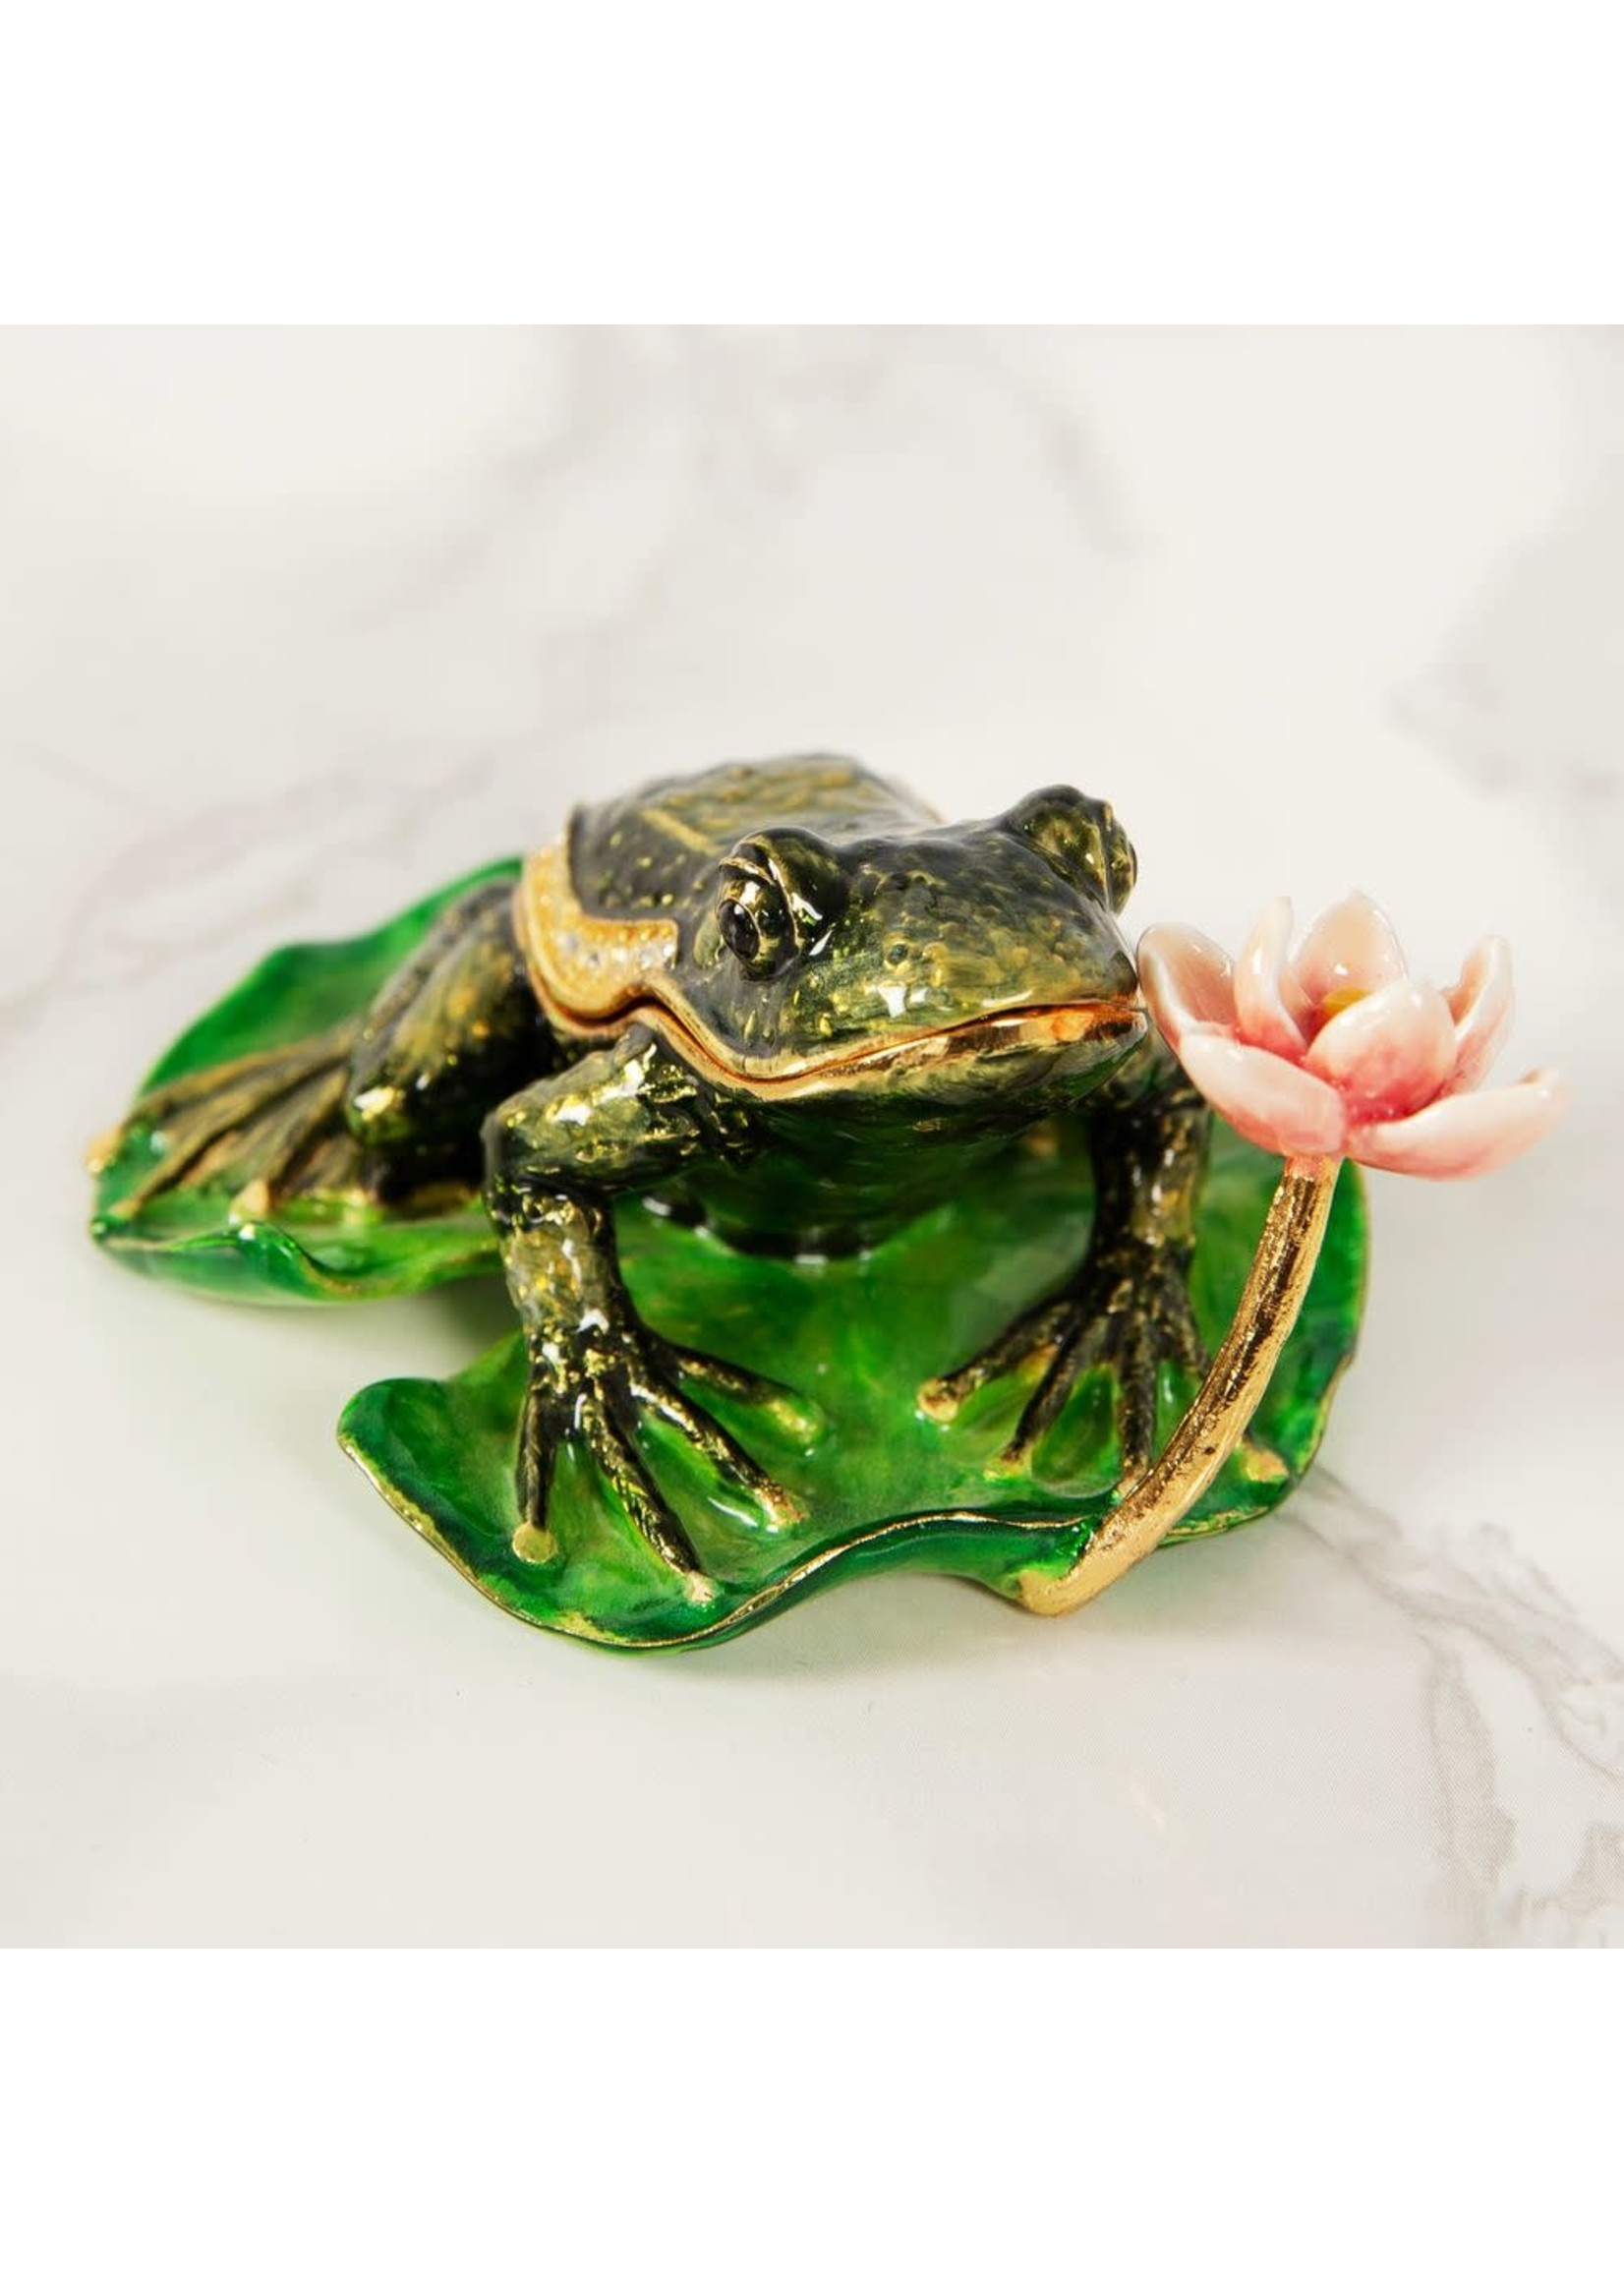 TREASURED TRINKETS - FROG ON A LILY PAD